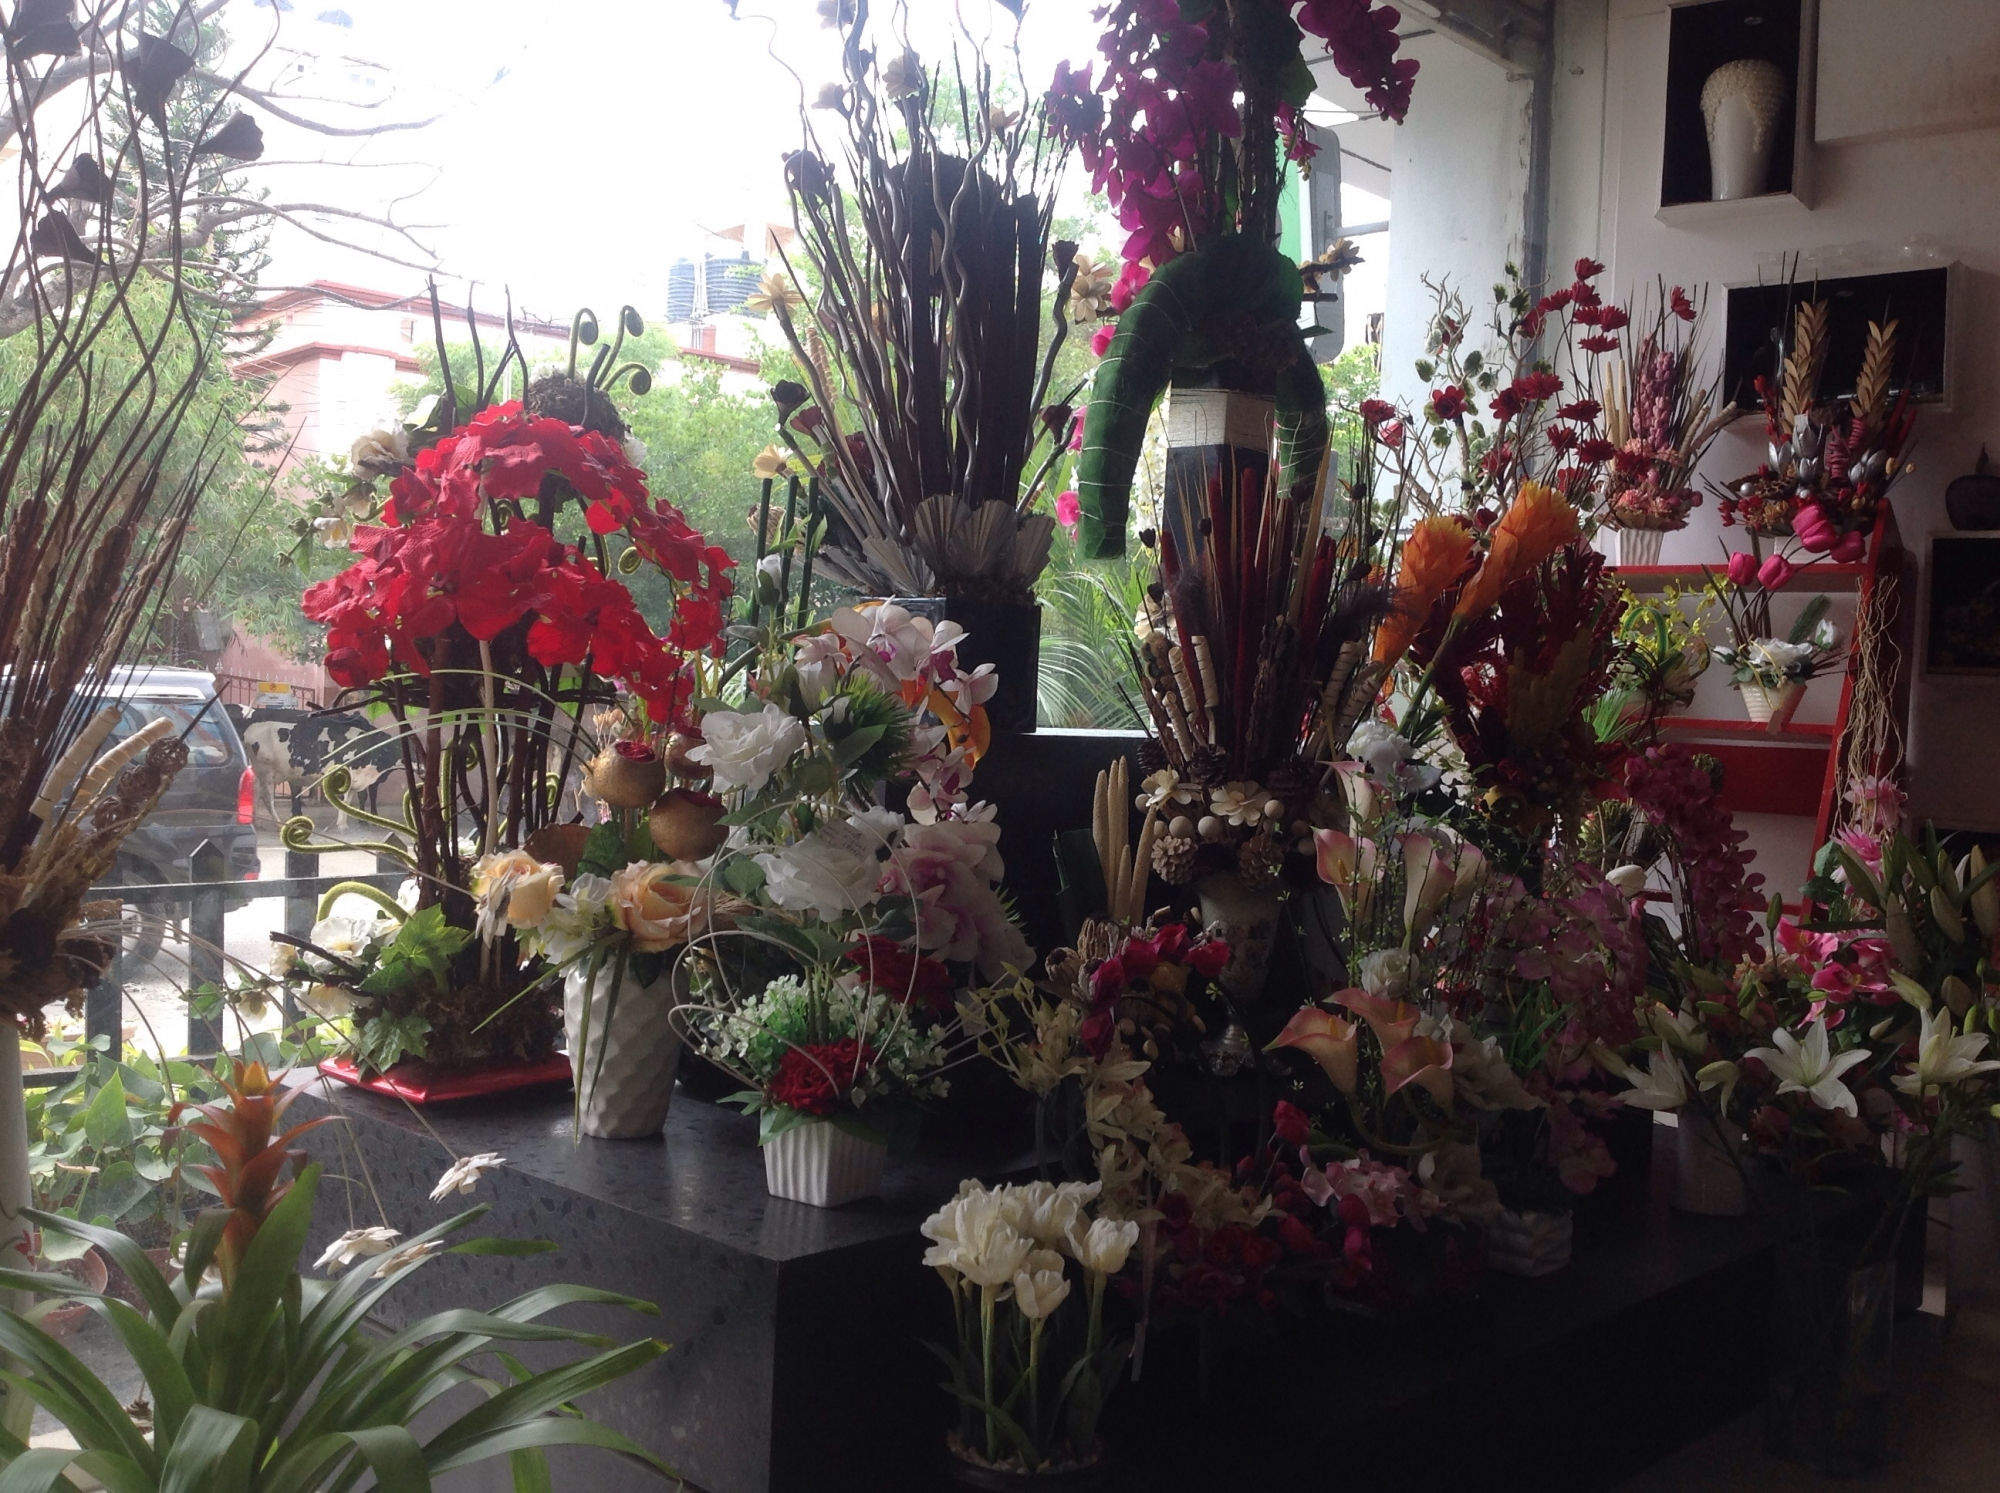 Florists In Hsr Layout Bangalore Flower Shop Justdial